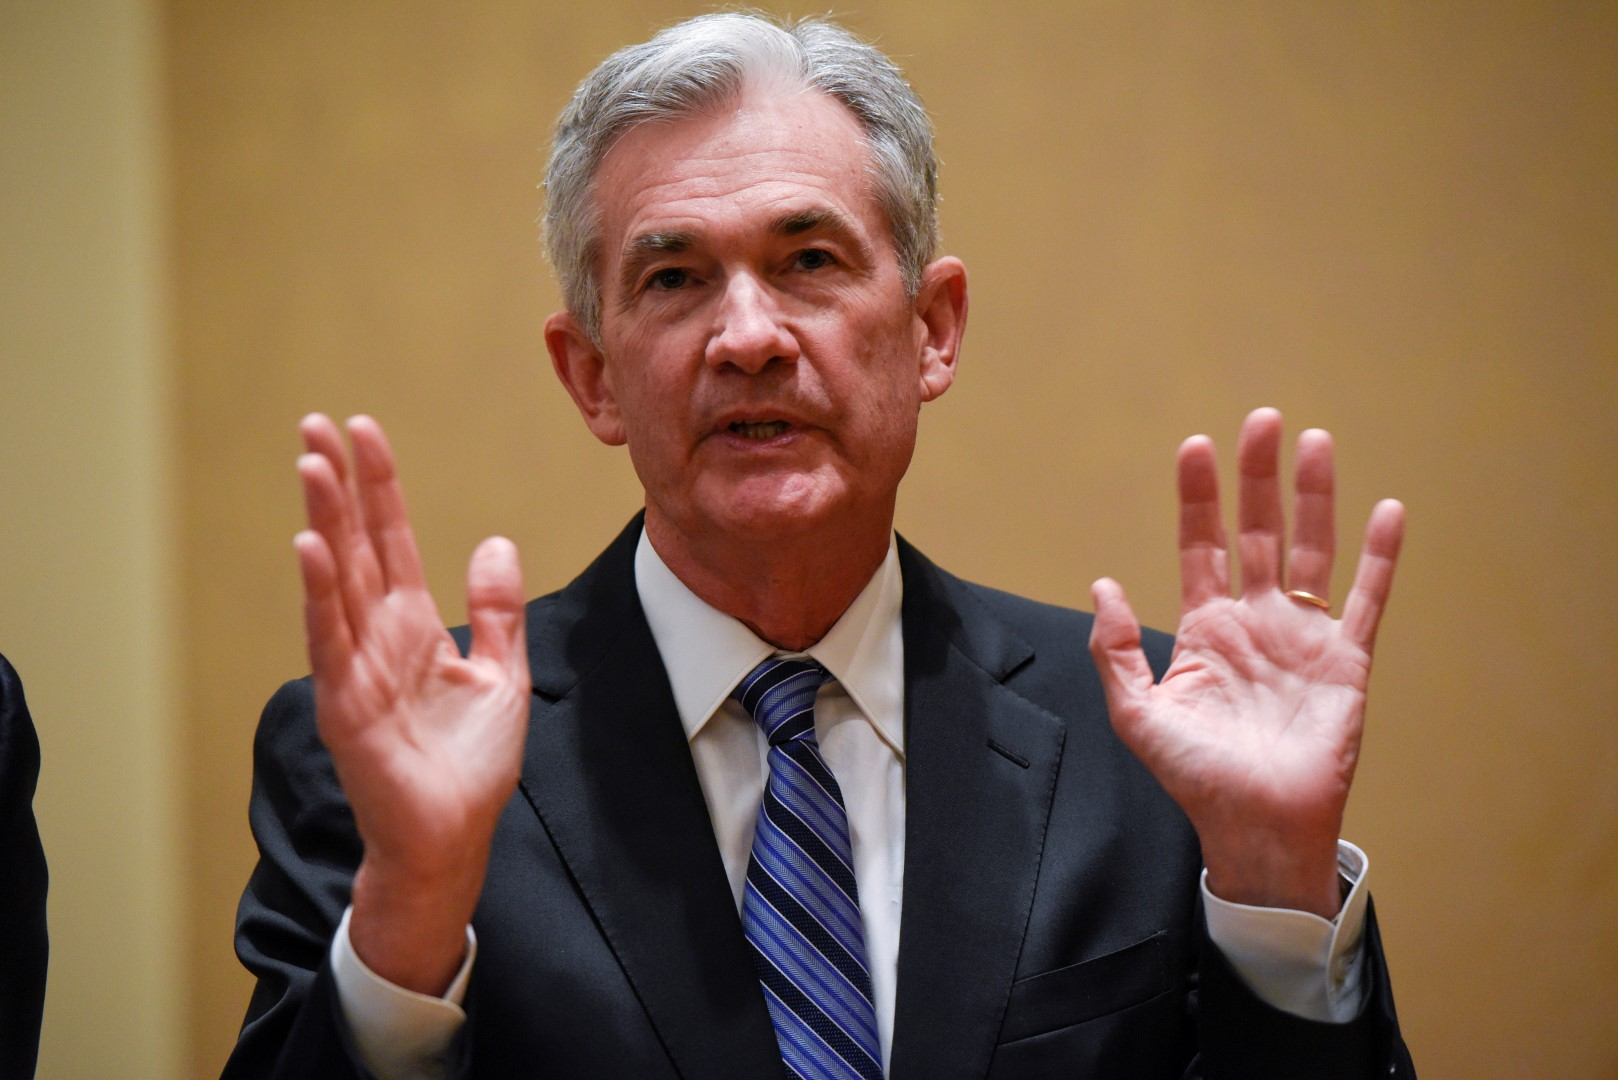 U.S. Federal Reserve Chairman Jerome H. Powell meets with Australian Prime Minister Malcolm Turnbull (not pictured) at the Federal Reserve in Washington, U.S., February 22, 2018. REUTERS/Sait Serkan Gurbuz - RC14708C3000